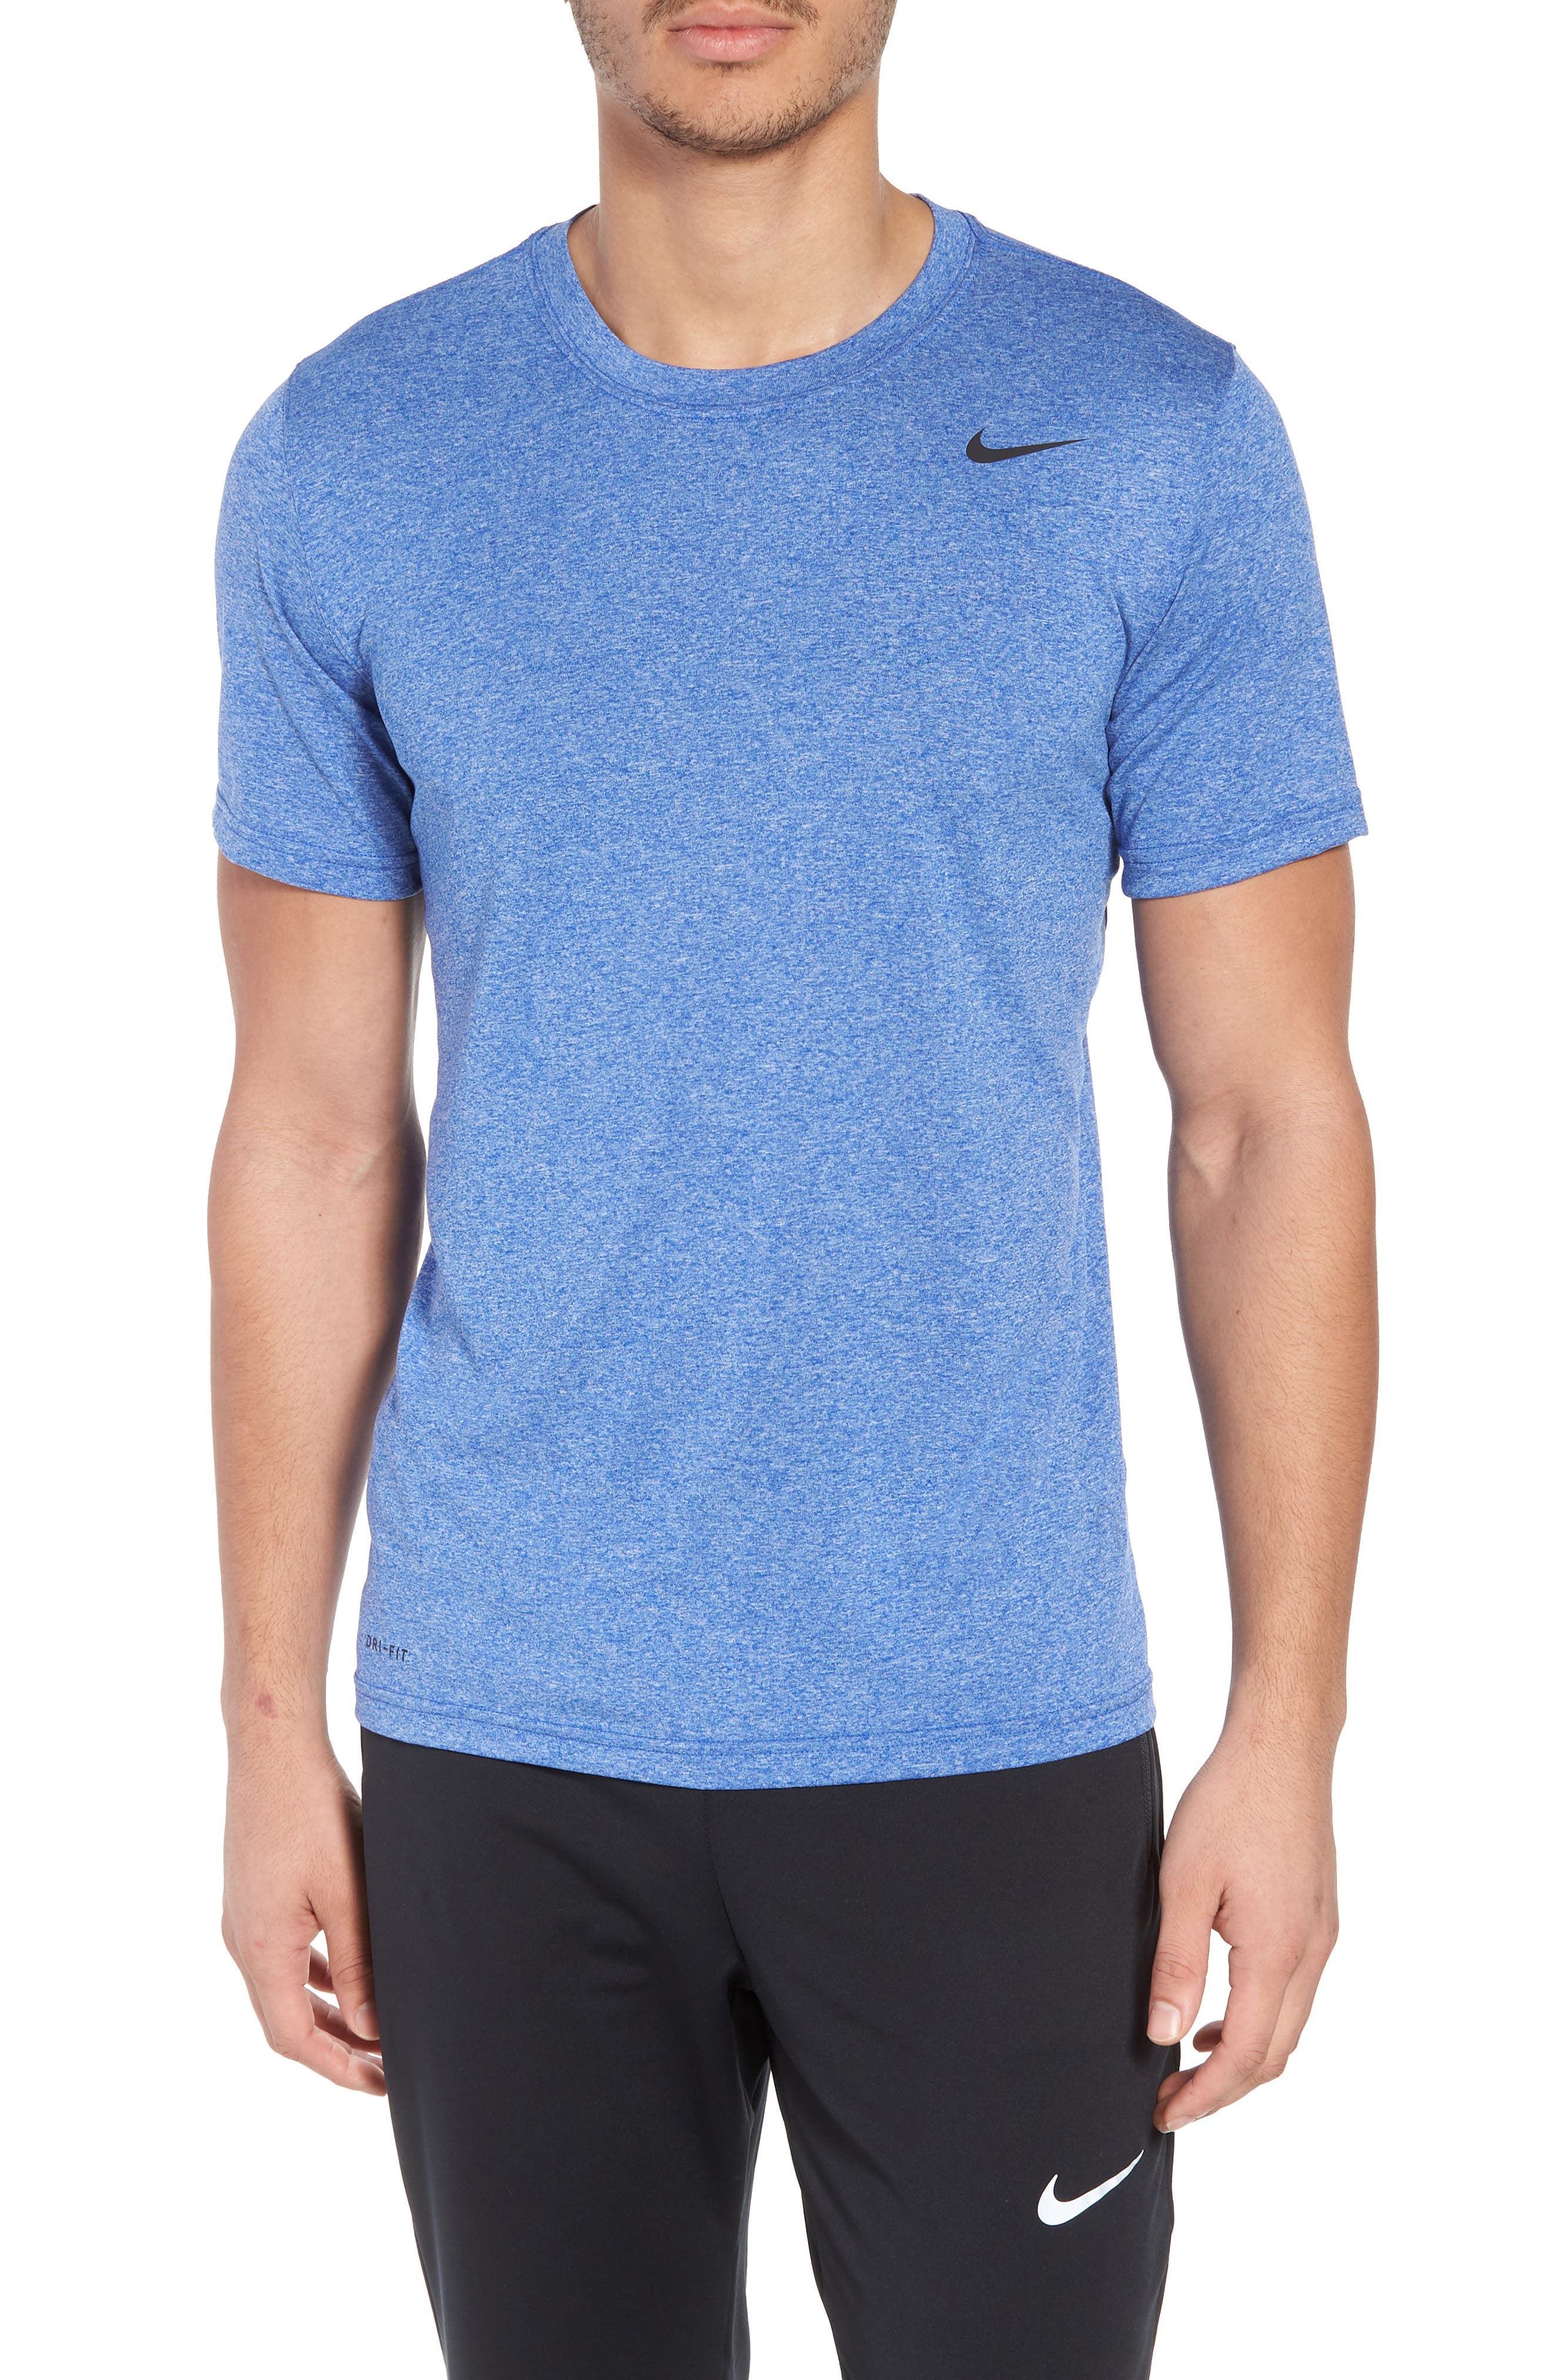 Legend 2.0 Dri-FIT Graphic T-Shirt,                         Main,                         color, Hyper Royal/ Ocean/ Heather